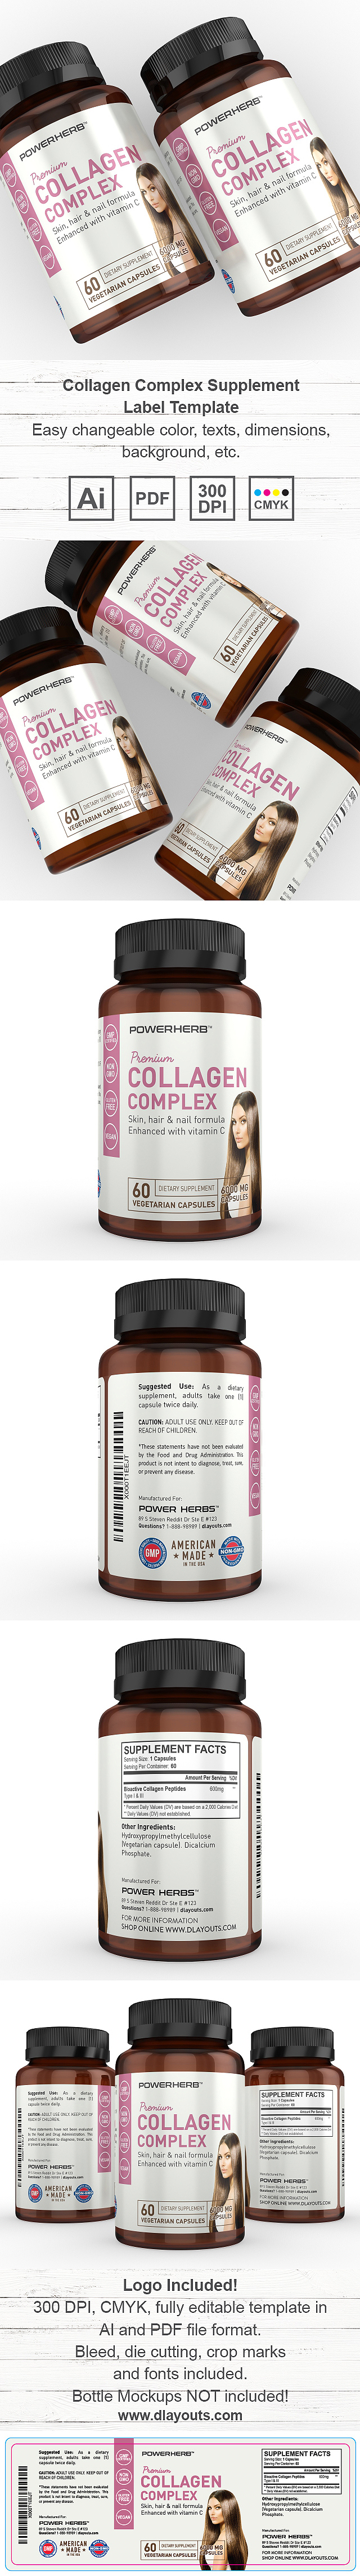 Collagen Complex Supplement Label Template